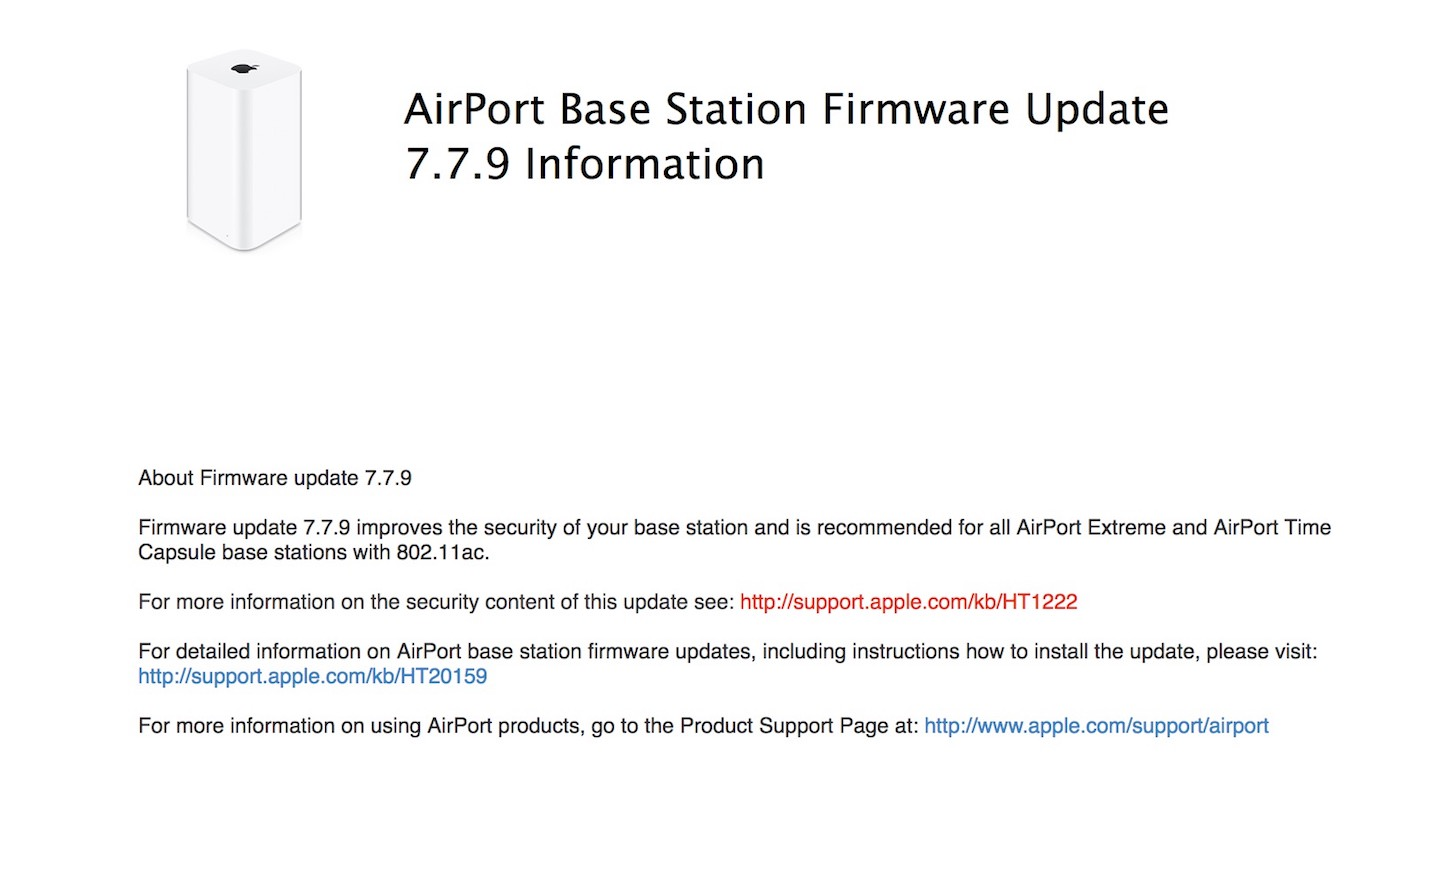 Firmware-Update-for-AirPort-Base-Station.jpg